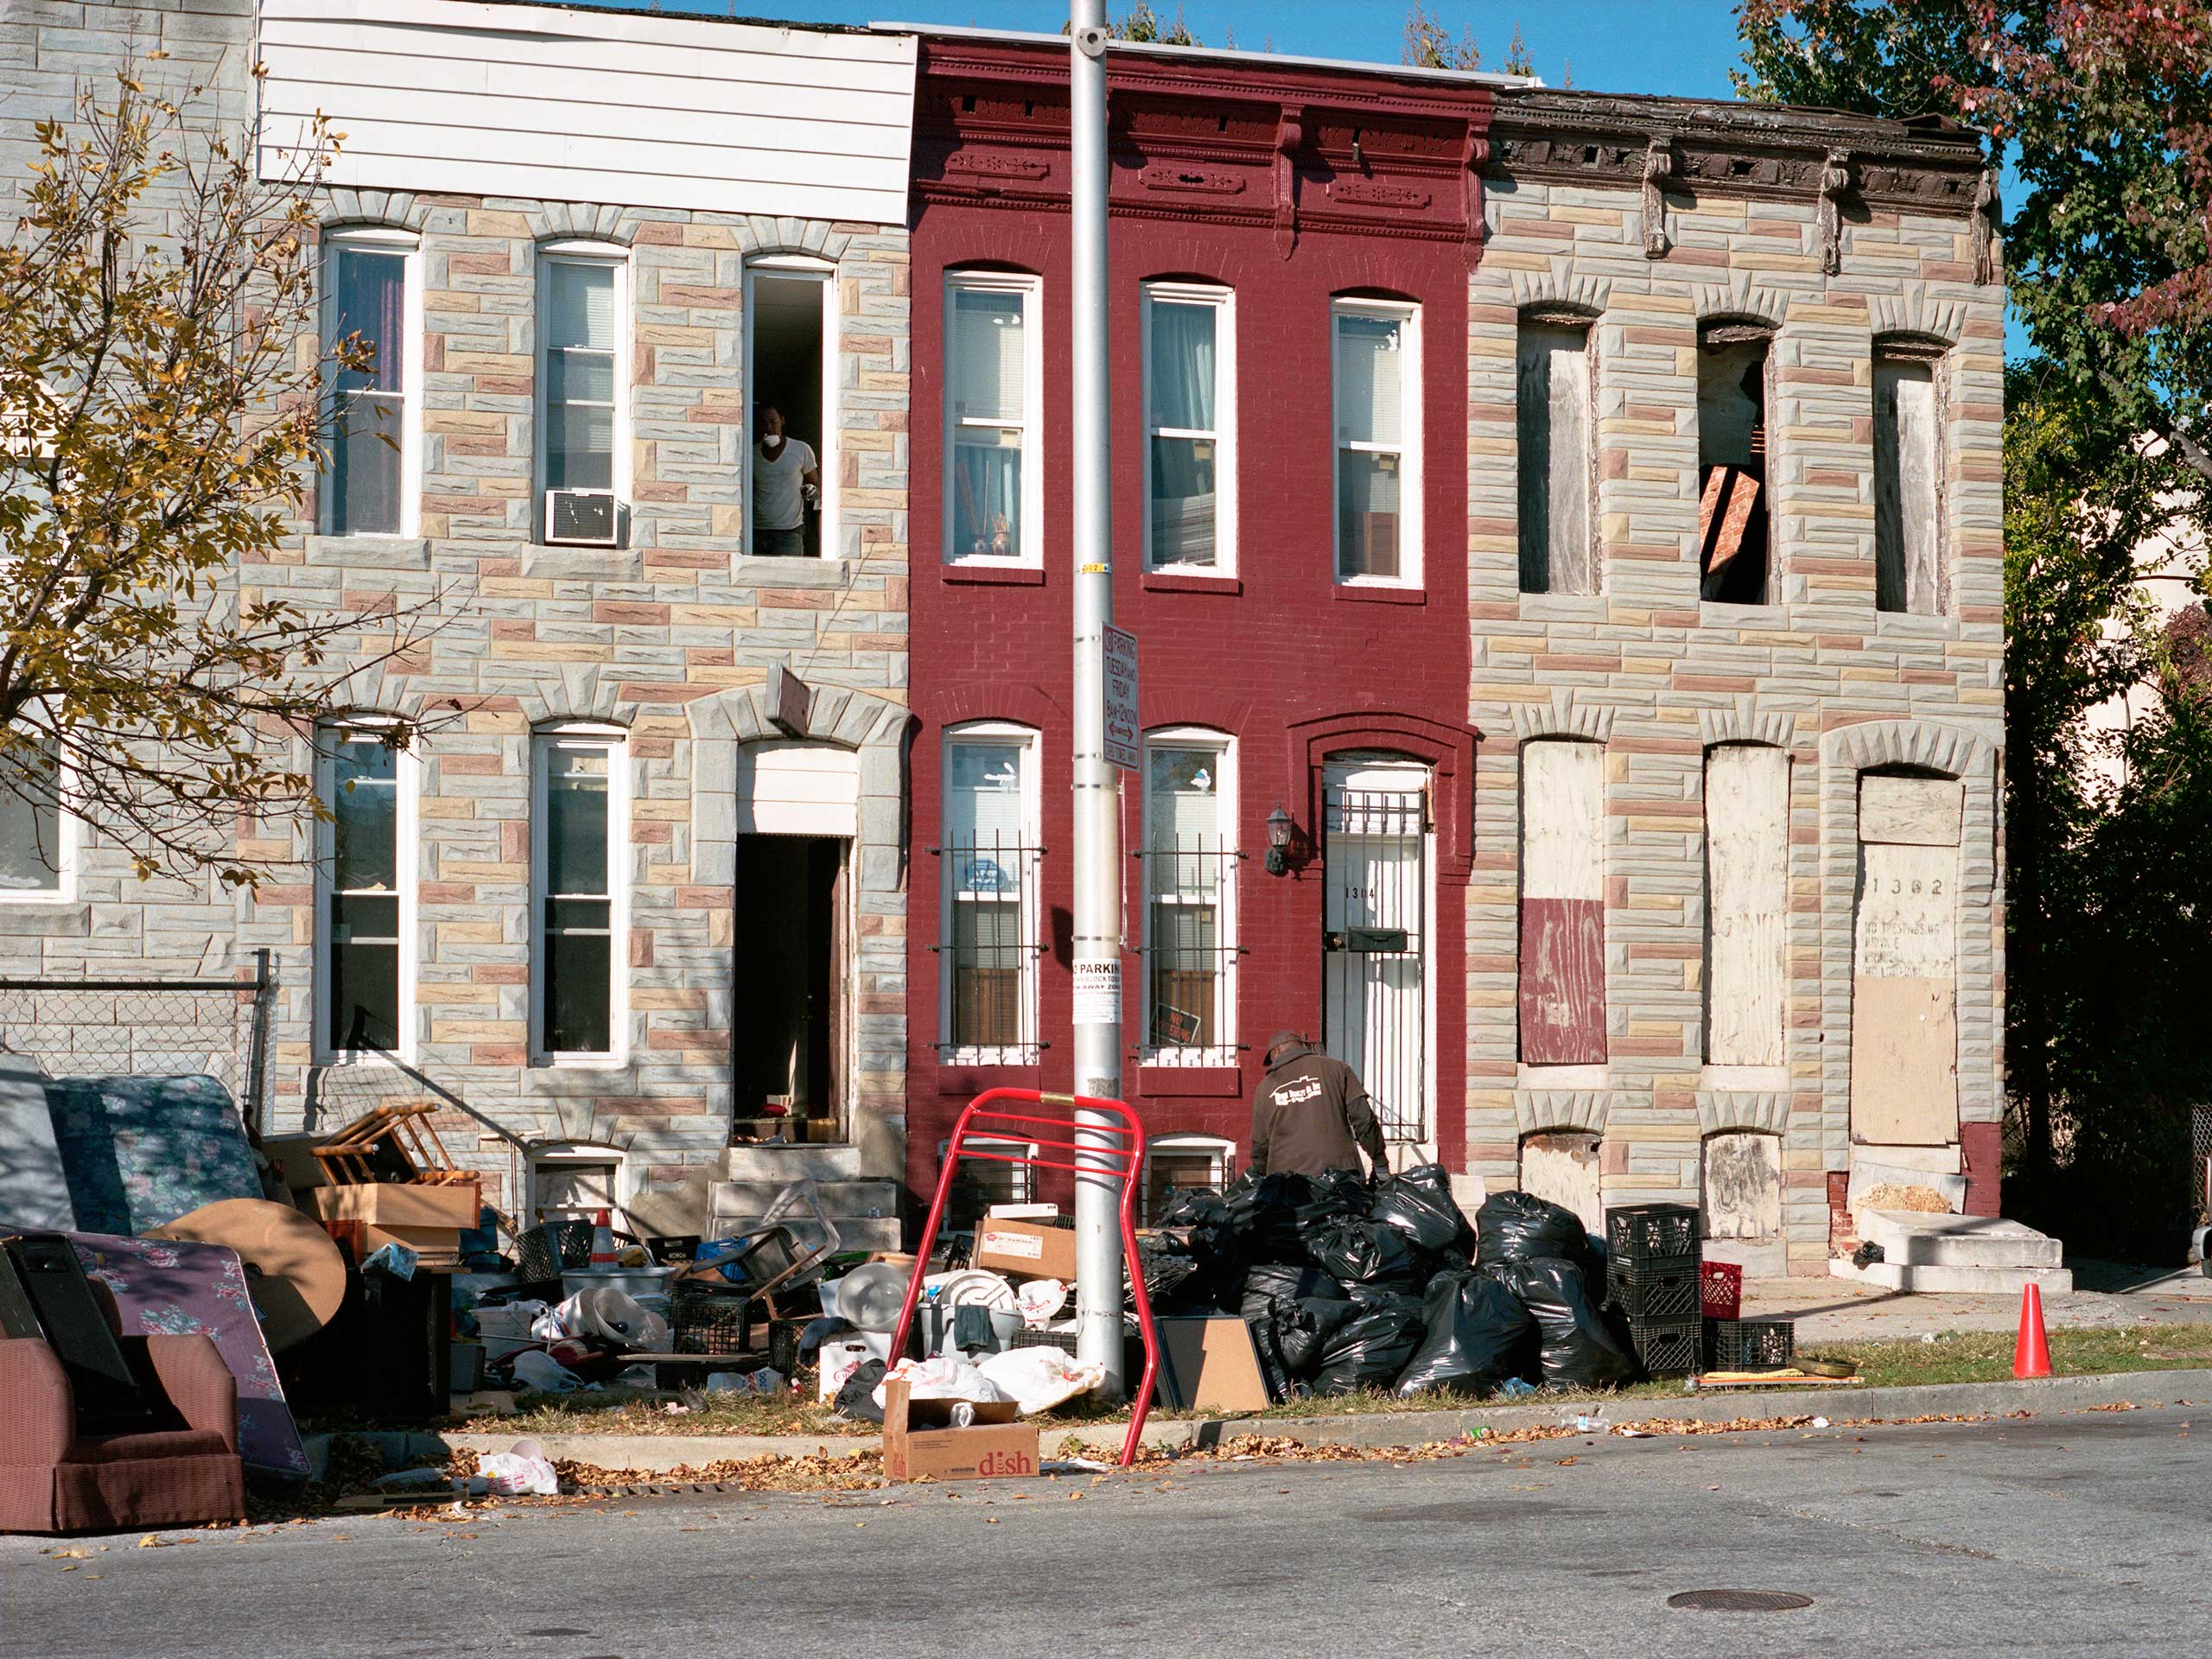 Local workers are hired to clear out a vacated row house on Riggs Avenue near North Carey Street after the tenants were evicted and abandoned many of their belongings in the process. The men sort the items into things that will be sold or trashed, yanking extension chords and other metal pieces from appliances in order to scrap them for extra cash.